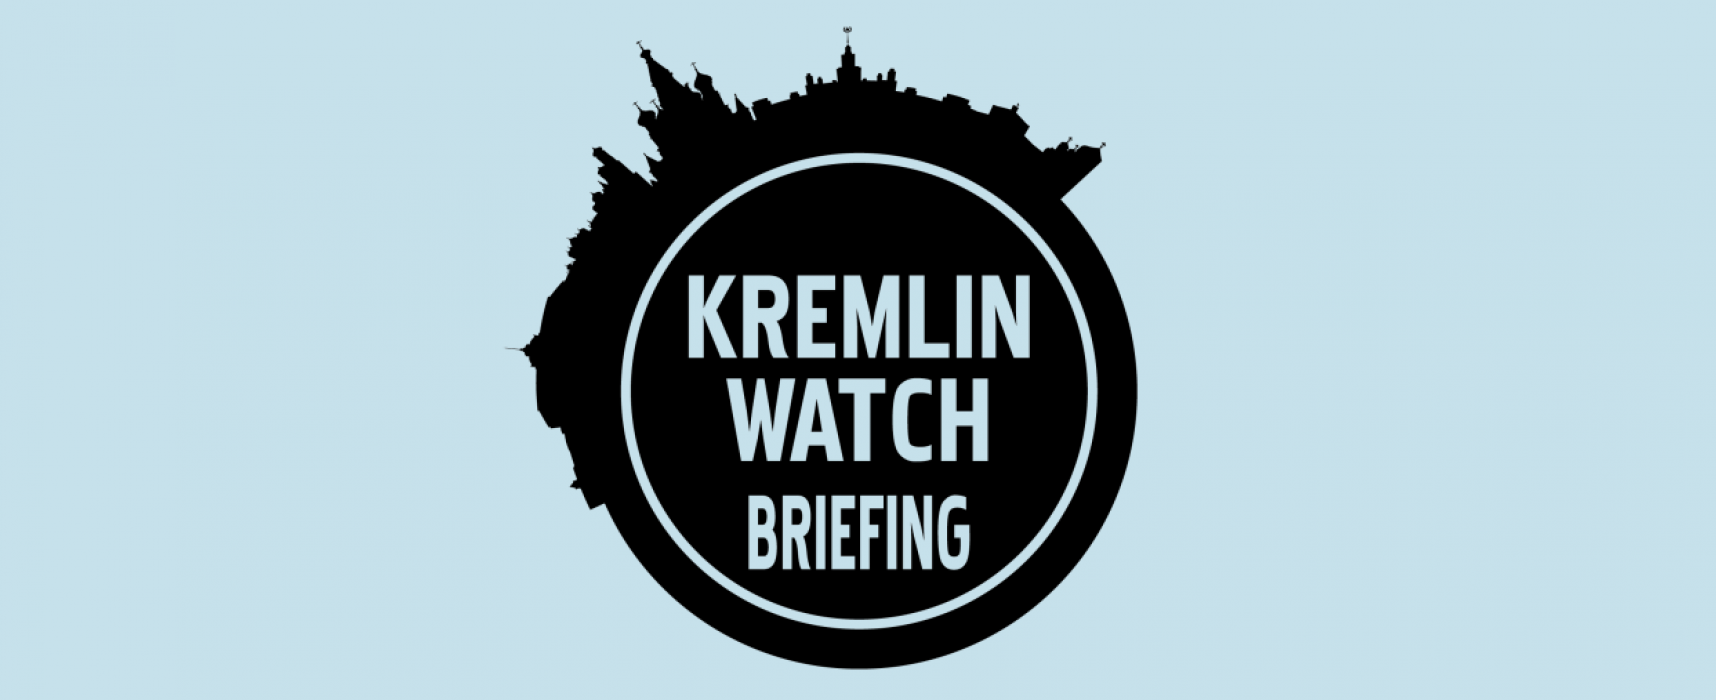 Kremlin Watch Briefing: The Night Wolves, a Russian biker gang, are a tool of Russian intelligence?